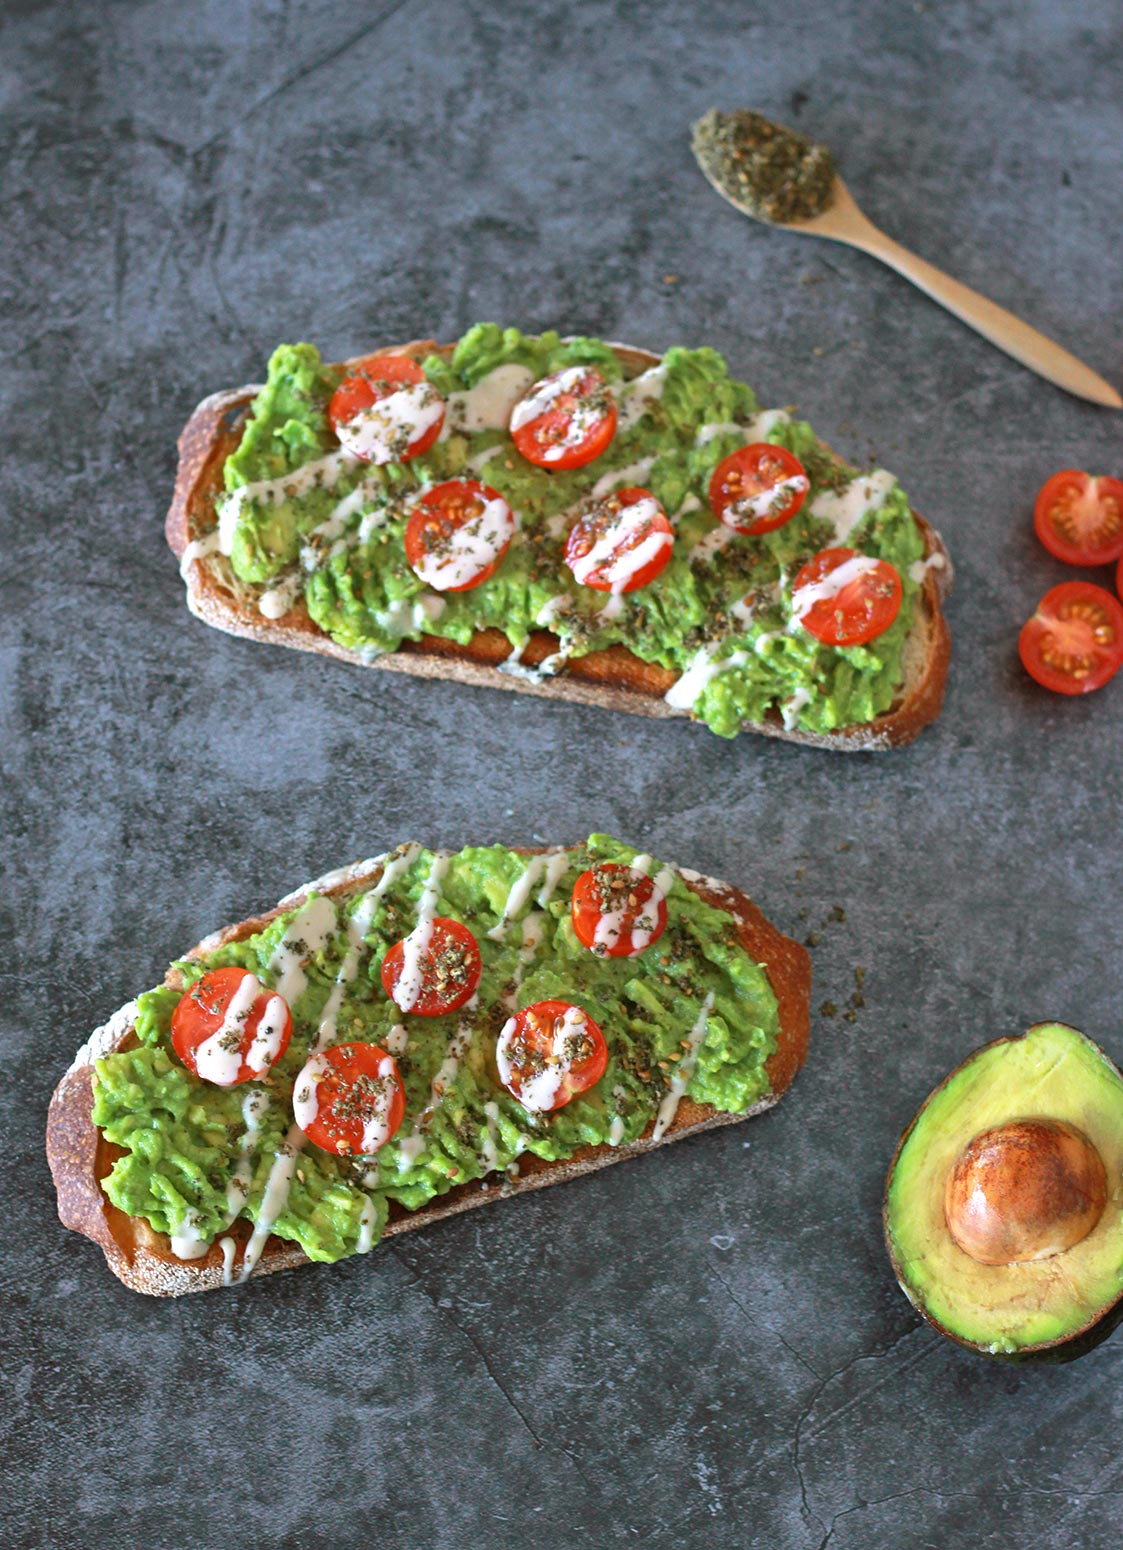 This zaatar avocado toast is a Mediterranean twist on your classic avocado toast, dressed with juicy cherry tomatoes and a creamy 3-ingredient tahini drizzle. This vegan recipe is a modern twist on the classic Middle Eastern breakfast staple of bread with zaatar and olive oil.